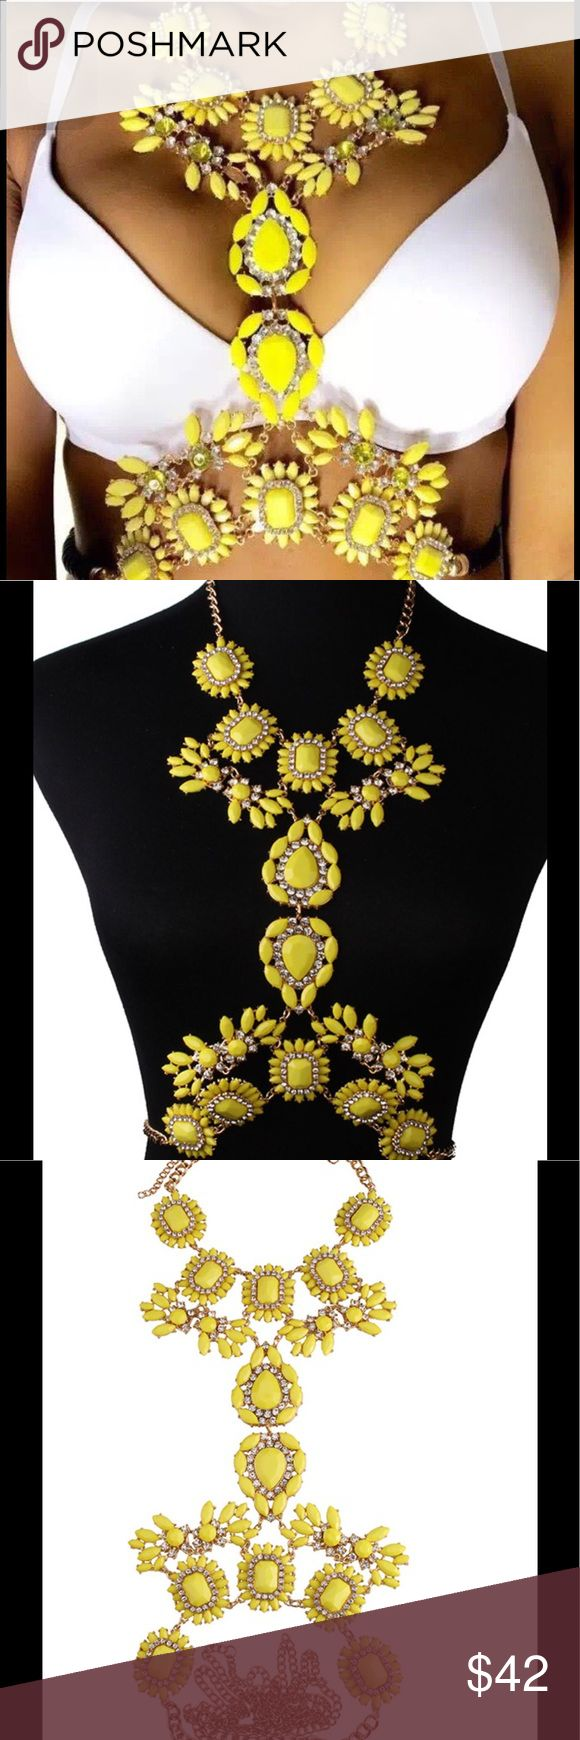 Canary Yellow Statement Piece Perfect for vacation. Statement body jewelry. Brand used for exposure. ***Please allow 14days for delivery.*** Missguided Jewelry